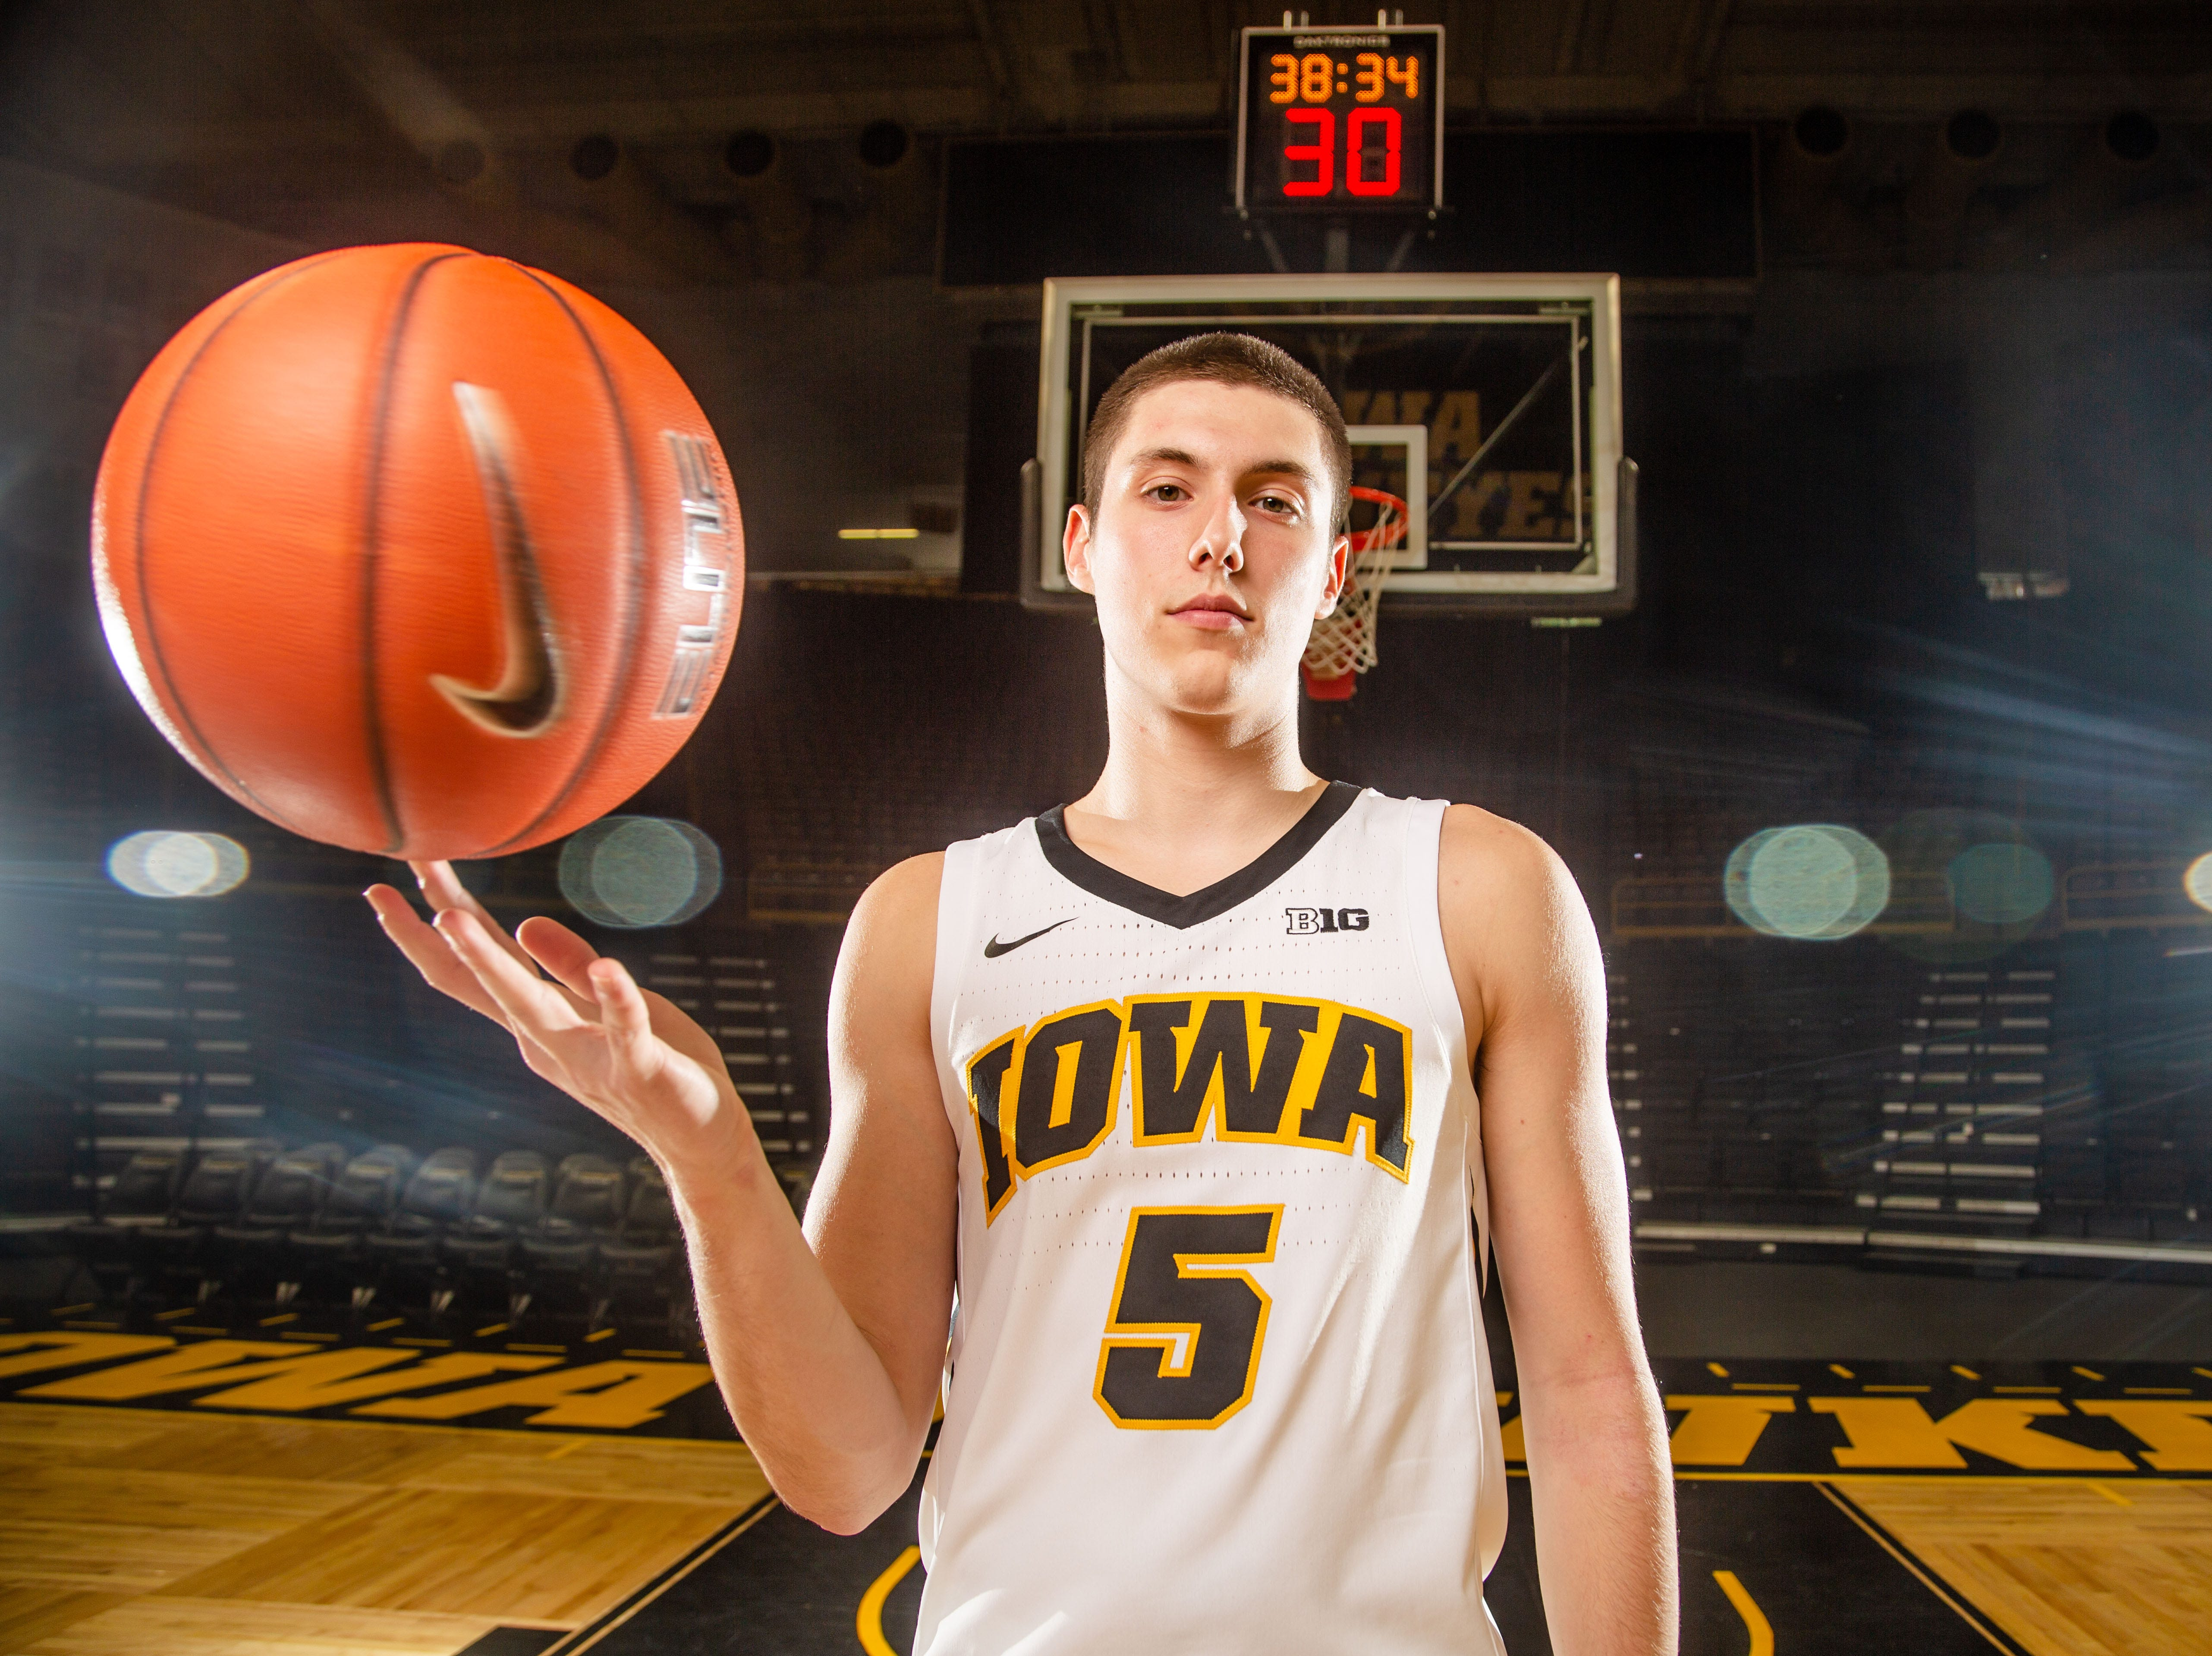 Iowa guard C.J. Fredrick poses for a photo during Hawkeye media day at Carver Hawkeye ArenaMonday, Oct. 8, 2018.